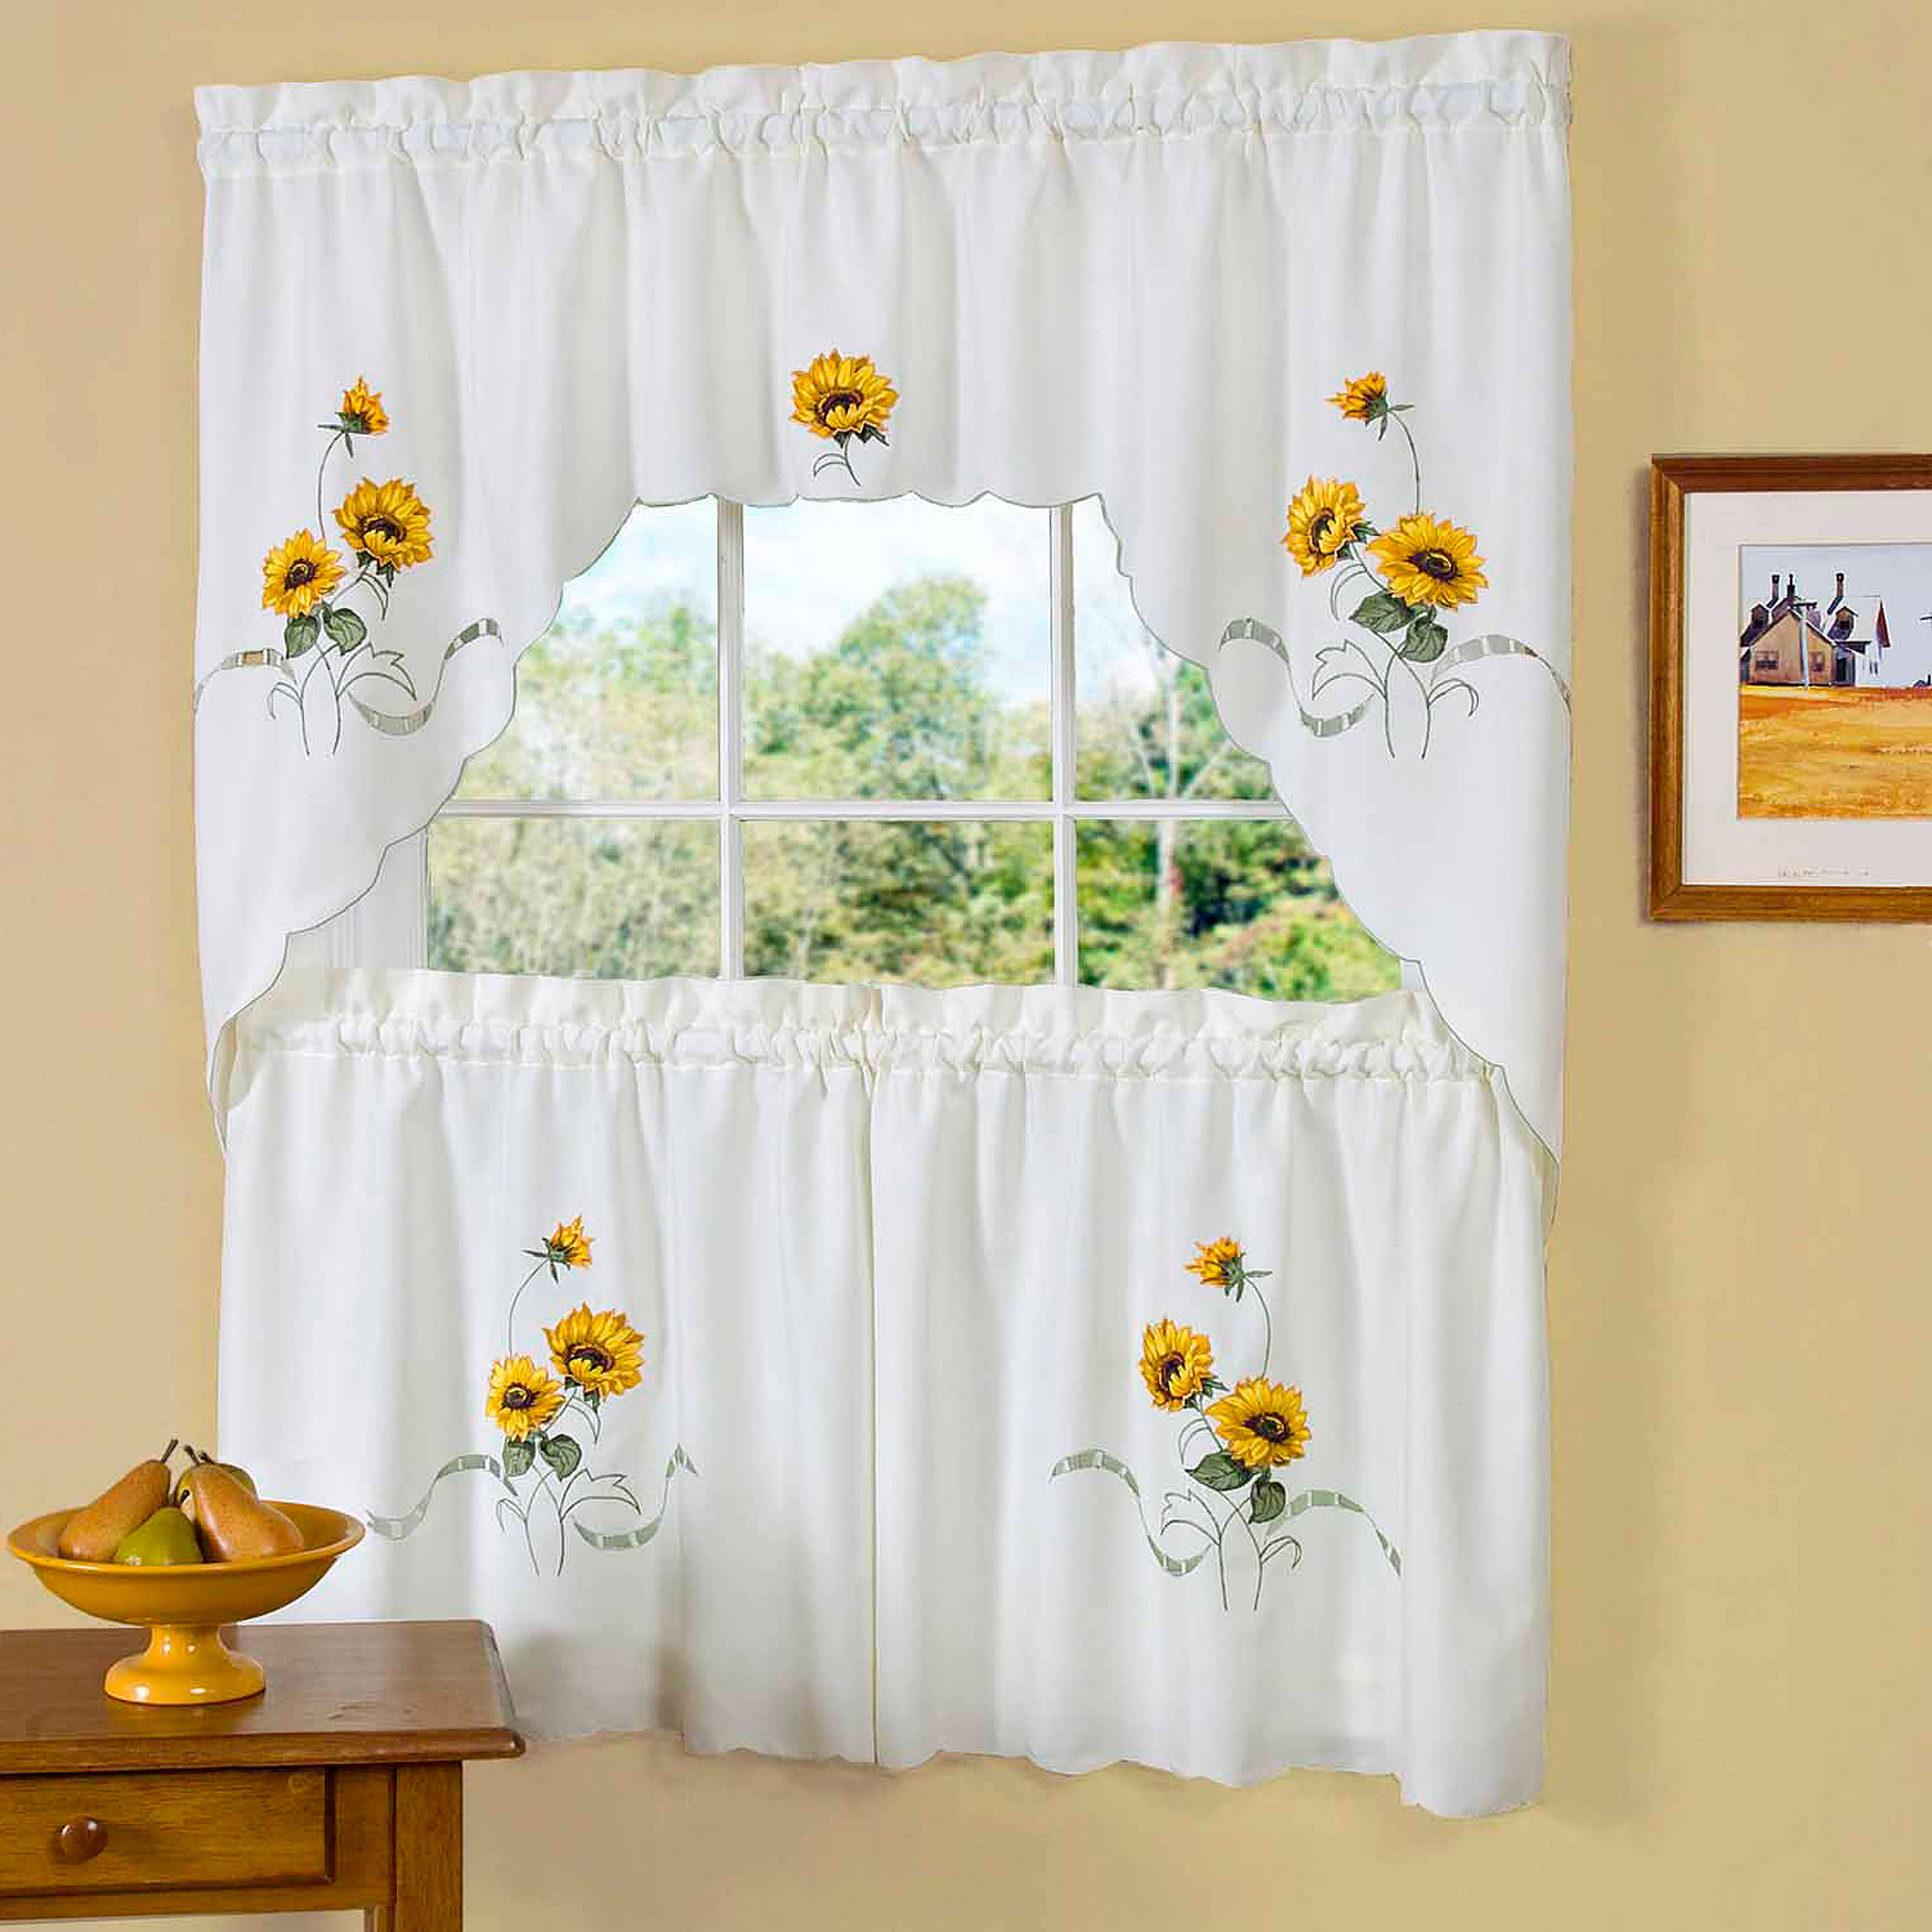 """Embroidered Ladybug Meadow Kitchen Curtains 24"""", 36"""" Tier Pair, 36"""" Swag Pair Or 12"""" Valance Regarding Preferred Embroidered Ladybugs Window Curtain Pieces (View 19 of 20)"""